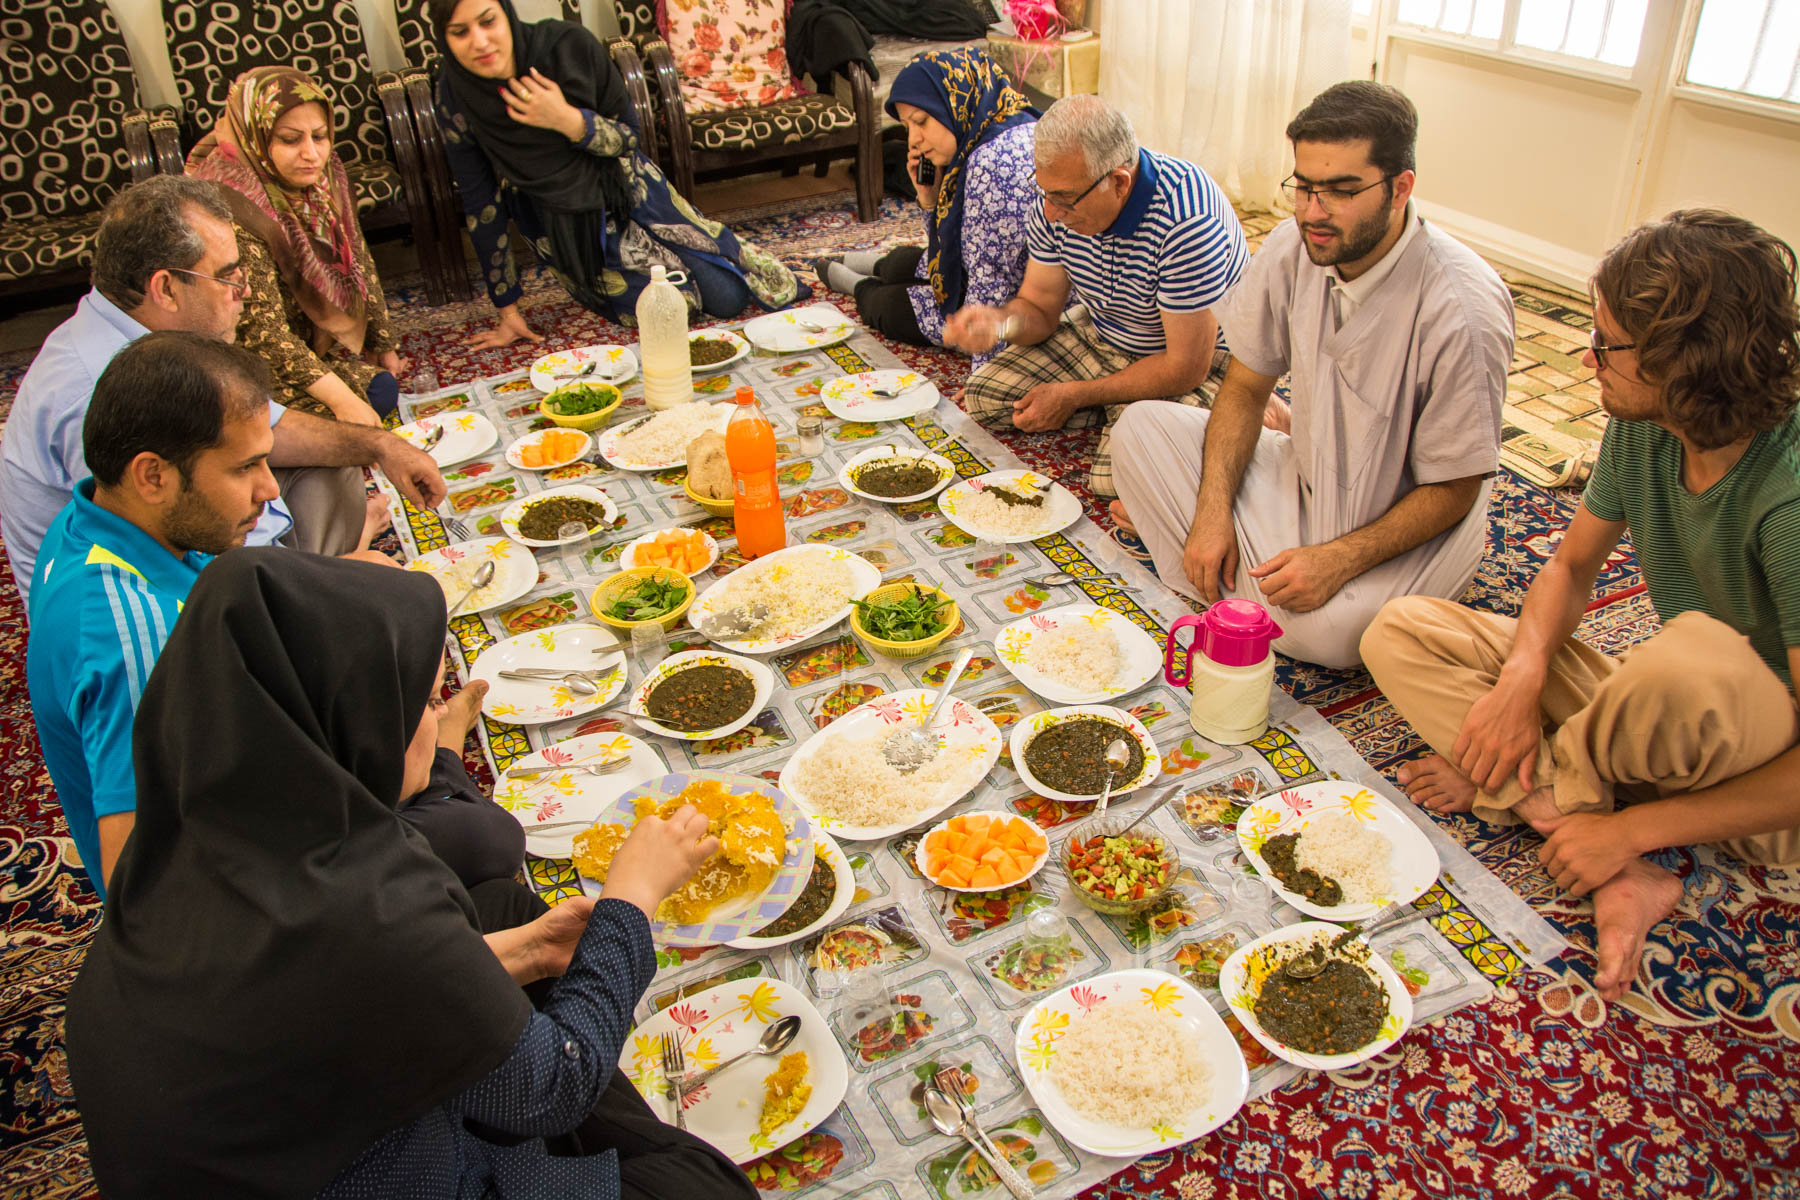 Lunch with a family in Shush, Iran